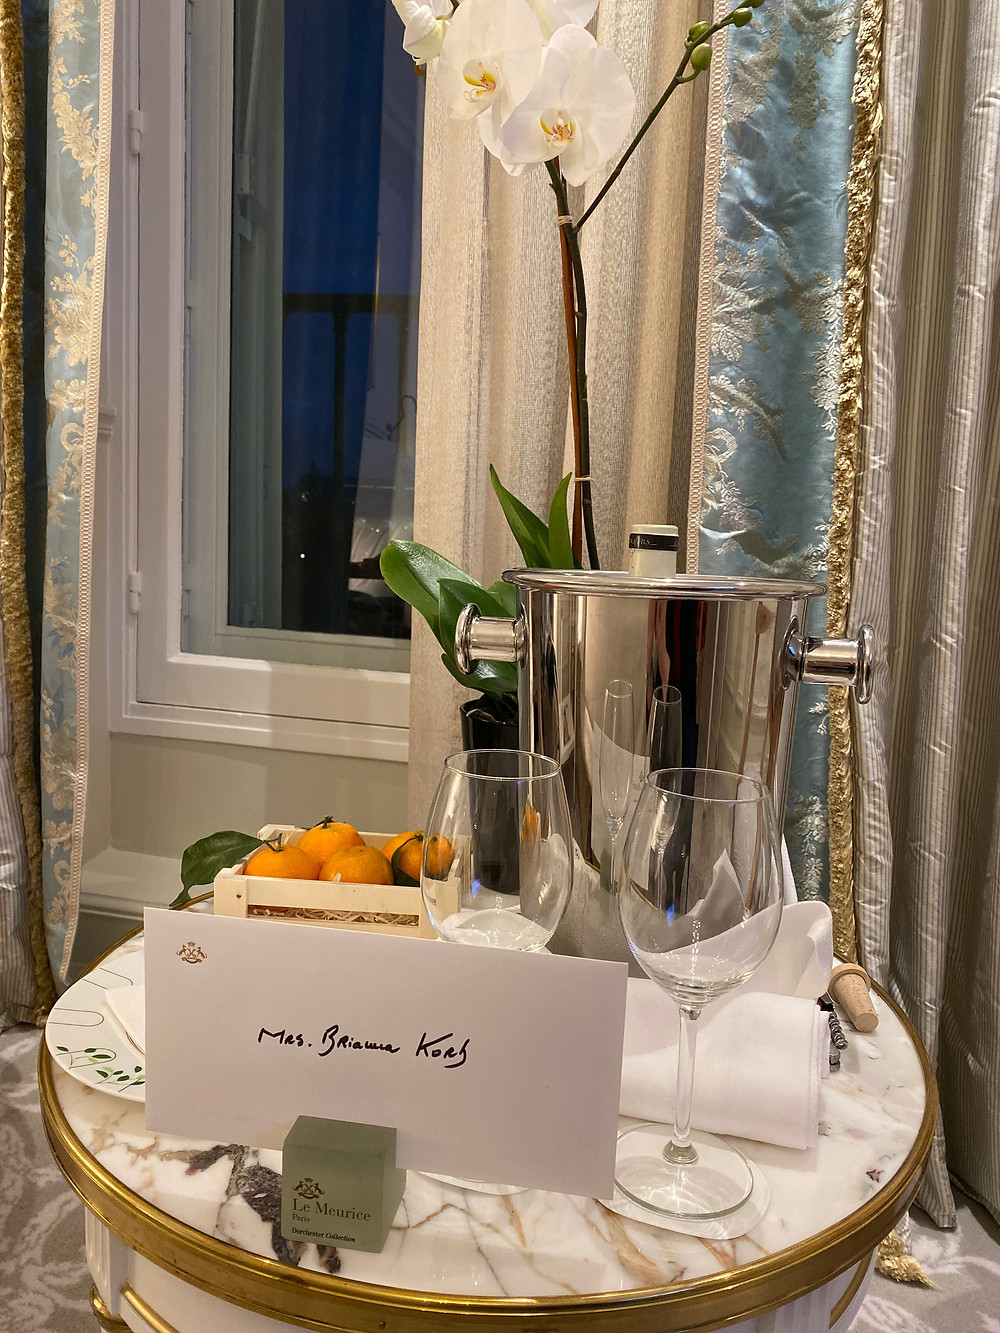 Welcome note and wine from the hotel.